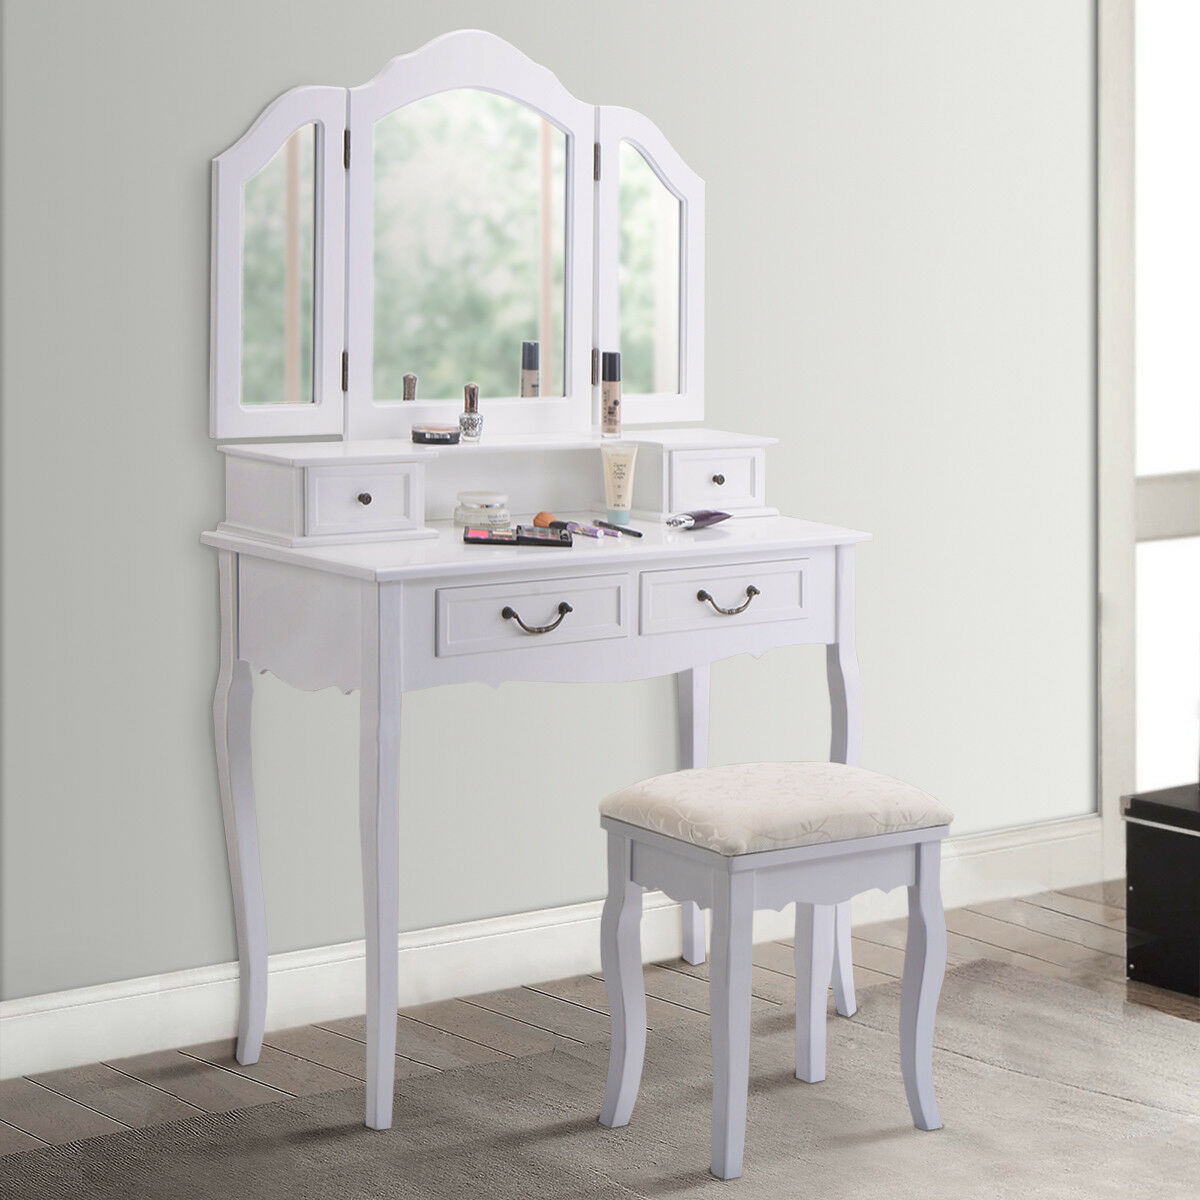 Gymax Vanity Set Makeup Table Dresser Tri Folding Mirror 4 Drawers with Stool White